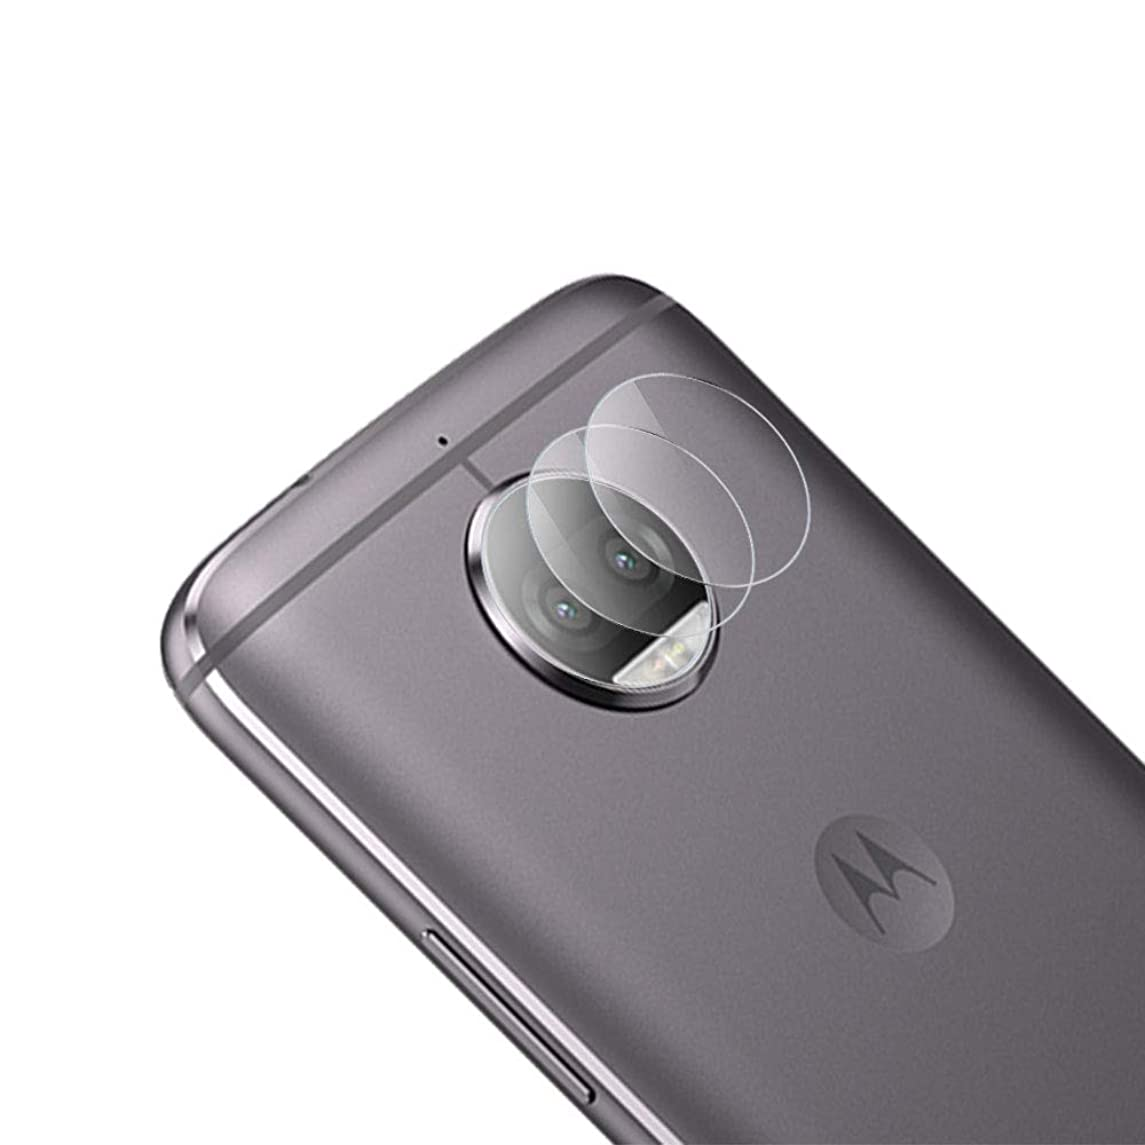 Fit Moto G5S Plus Camera Protector-(3 Pack) SEEU. AGAIN Anti-Scratch 9H Hardness HD Clear Back Camera Lens Tempered Glass Protective Film Fit Motorola Moto G5S Plus XT1802 XT1803 XT1804 XT1805 XT1806